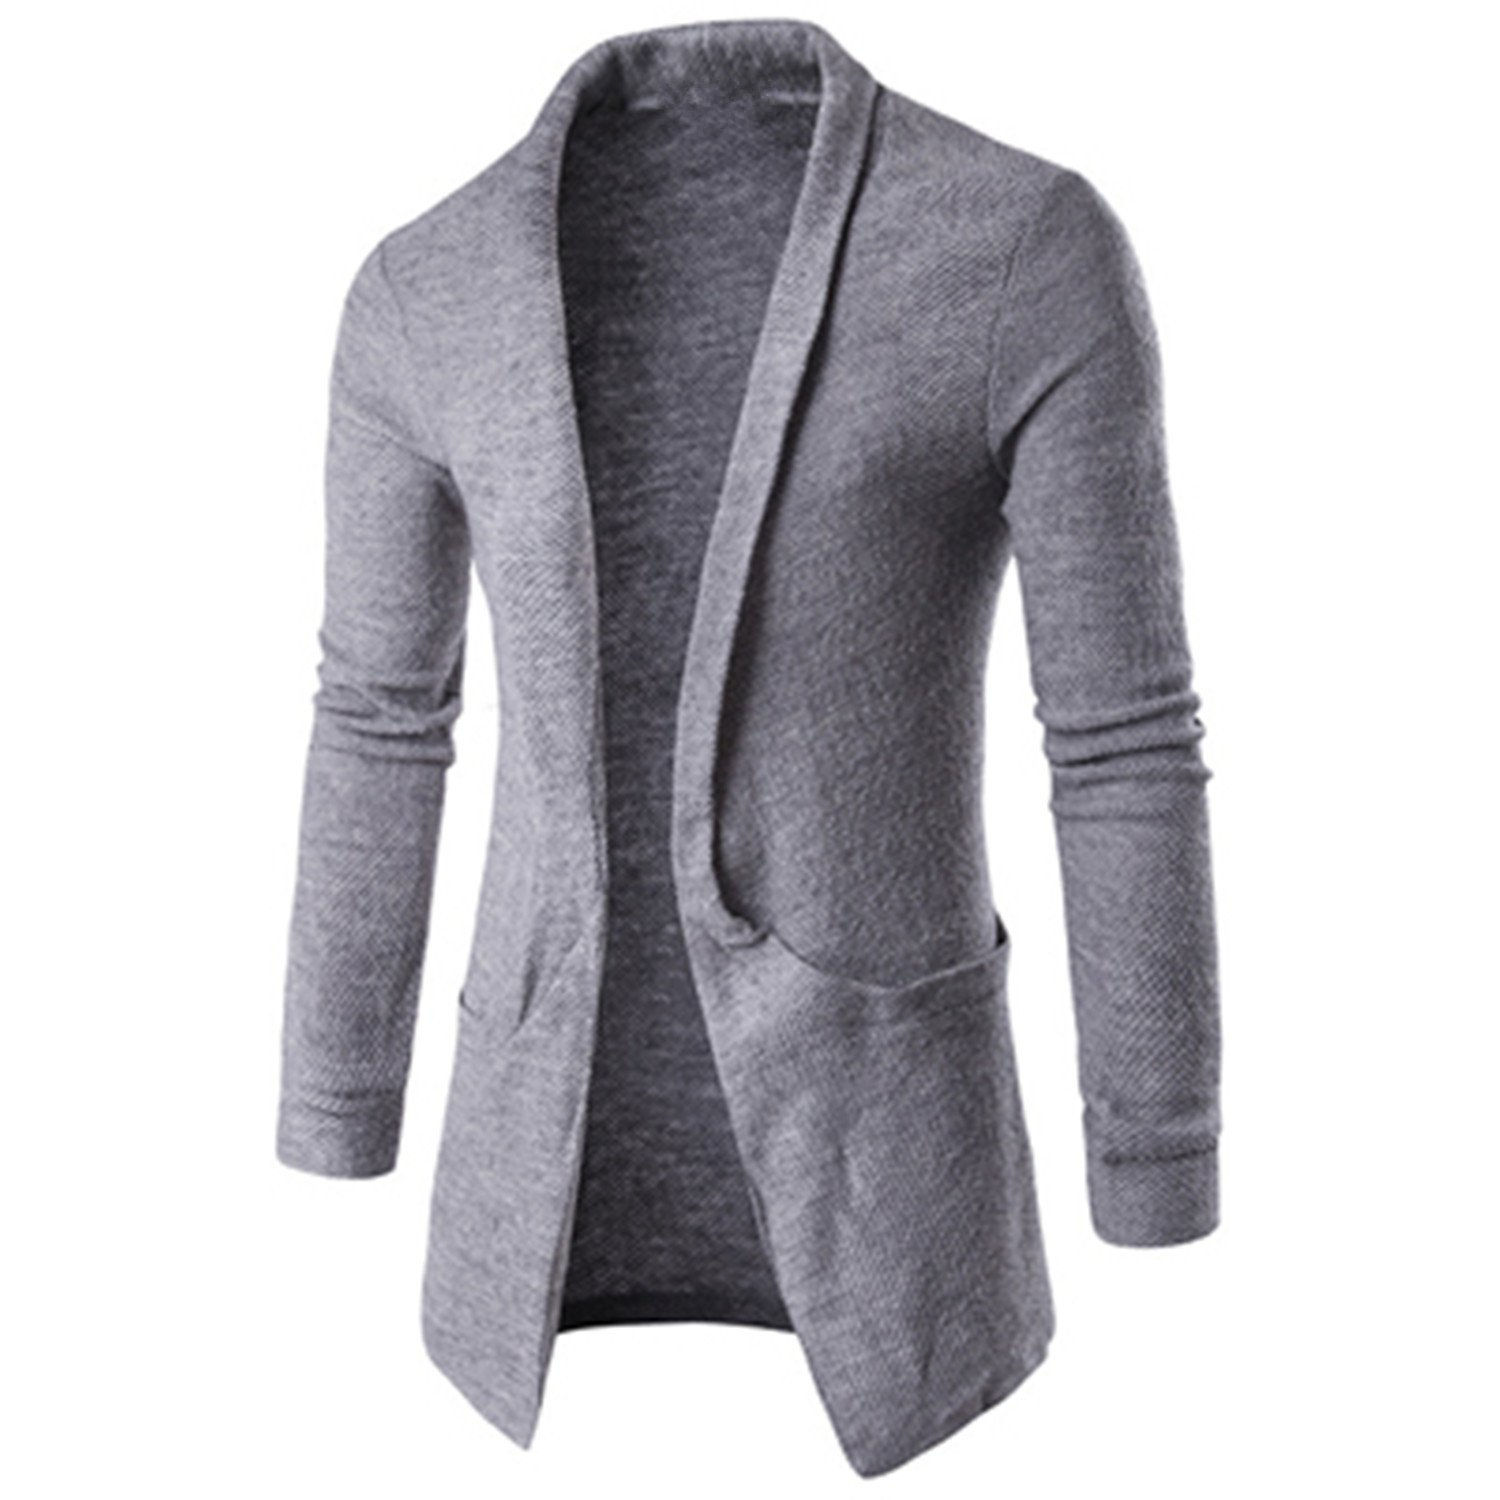 XUEXIASONG Mens Cardigan Sweaters Spring Long Sweaters Casual Knitted Sweater